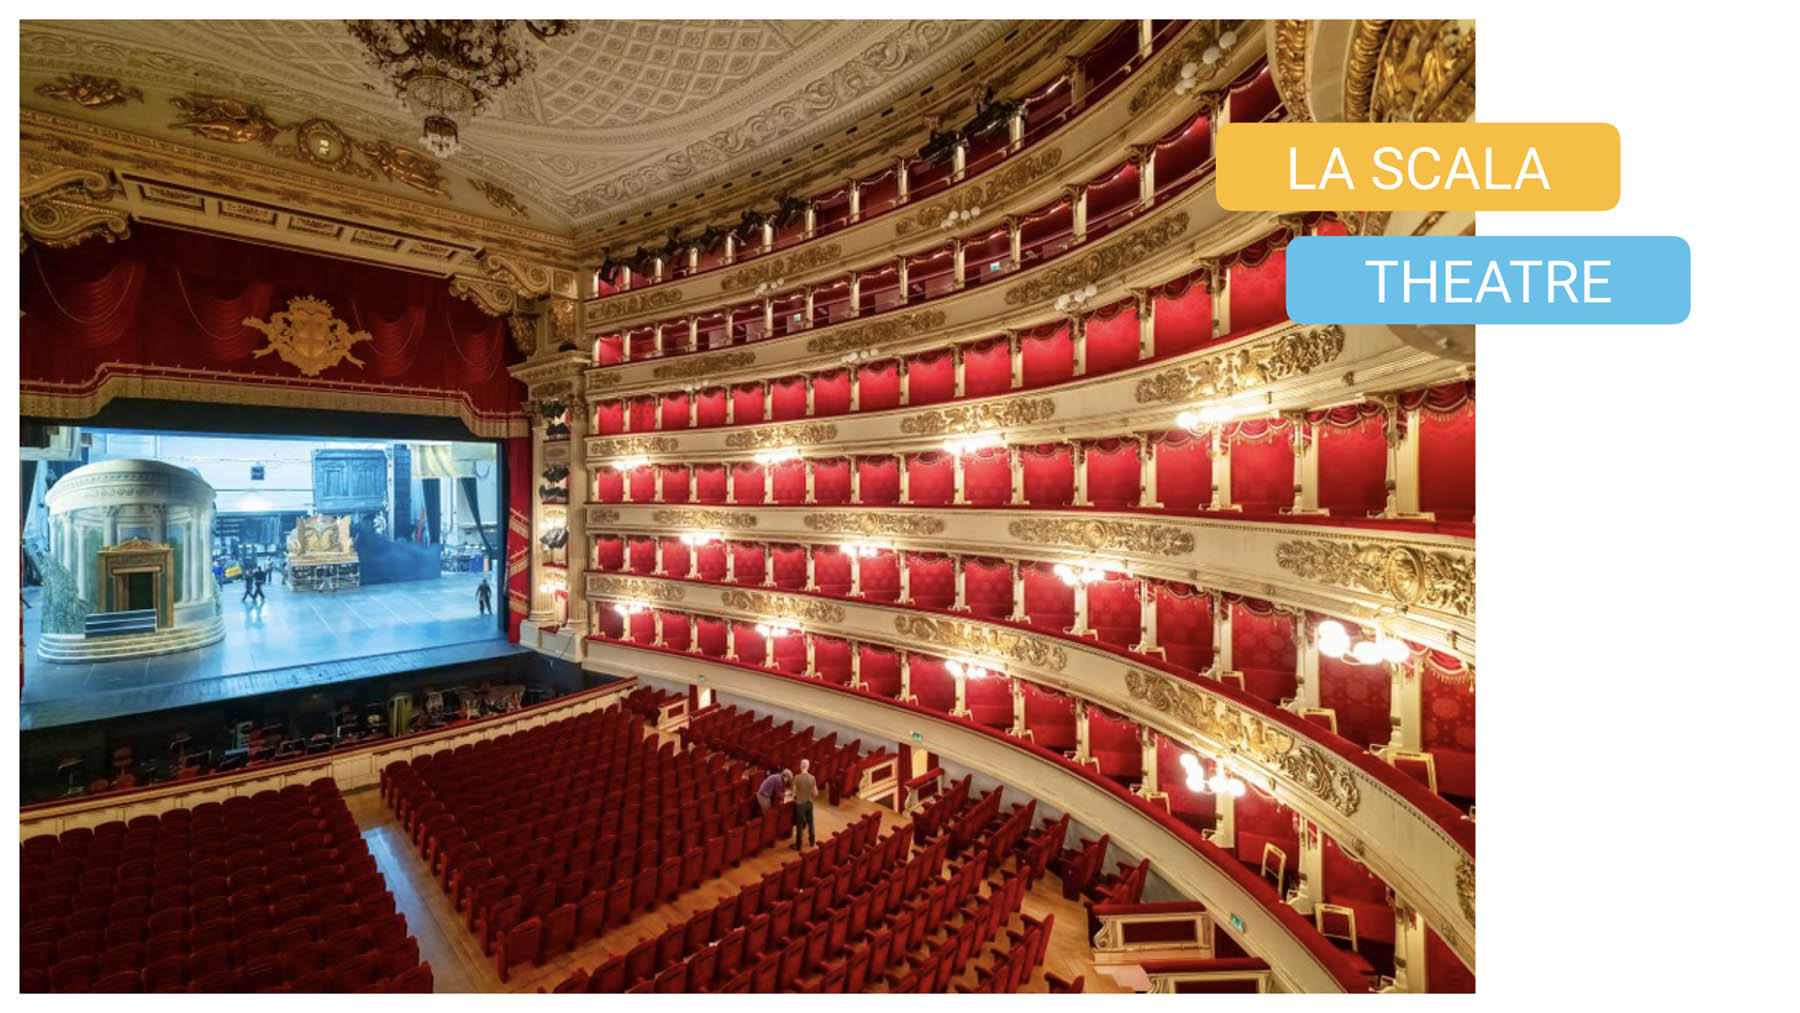 luxury entertainment milan teatro scala theatre vittorio emanuele gallery